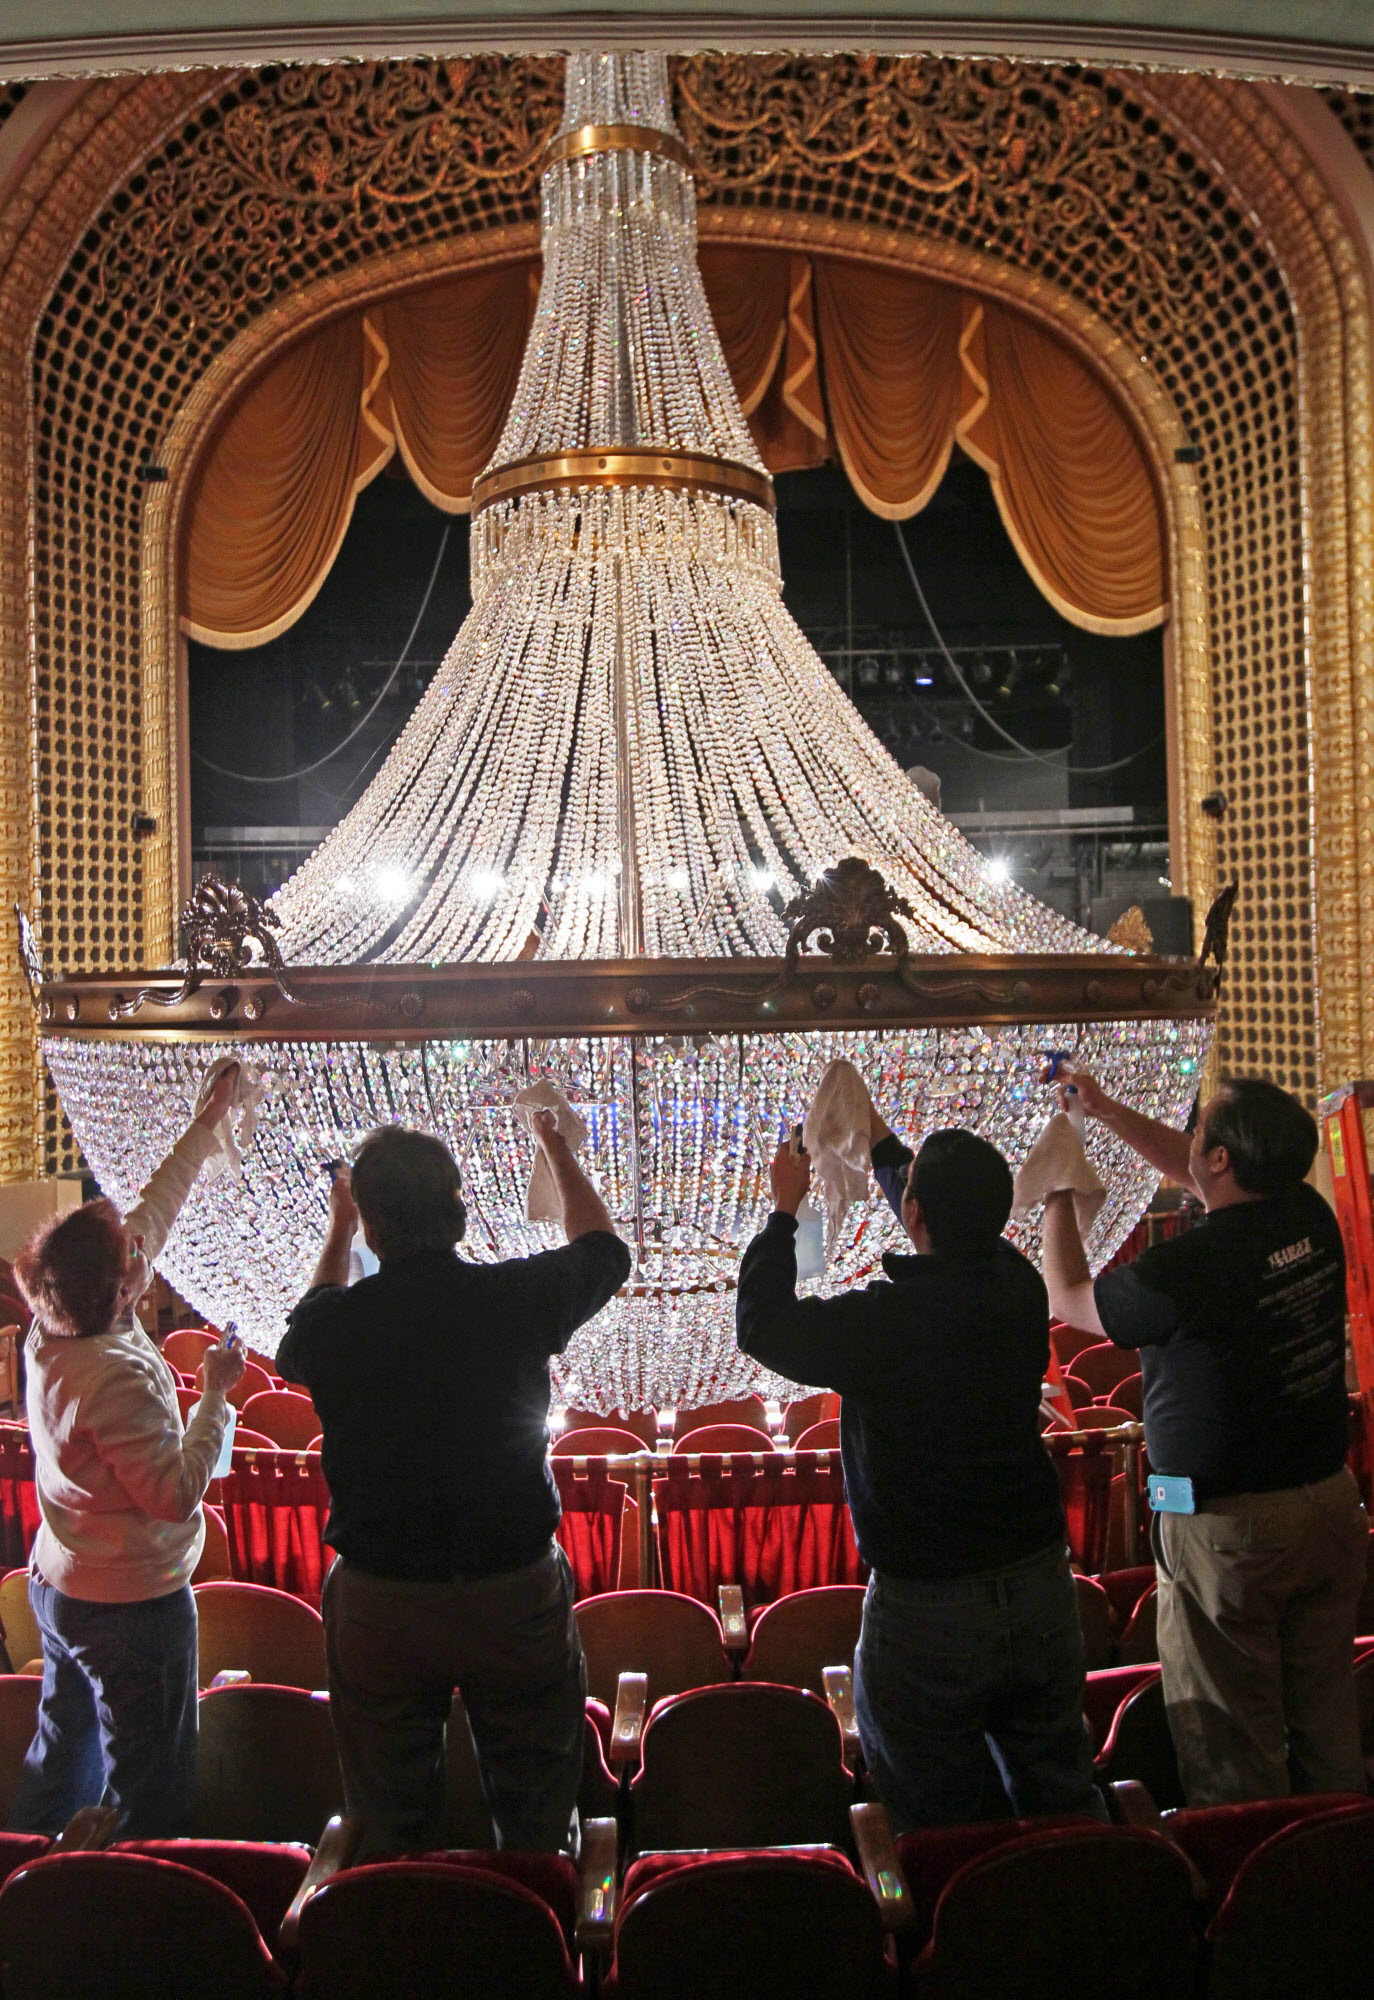 Workers cleaning the chandelier. Credit: Milwaukee Journal Sentinel